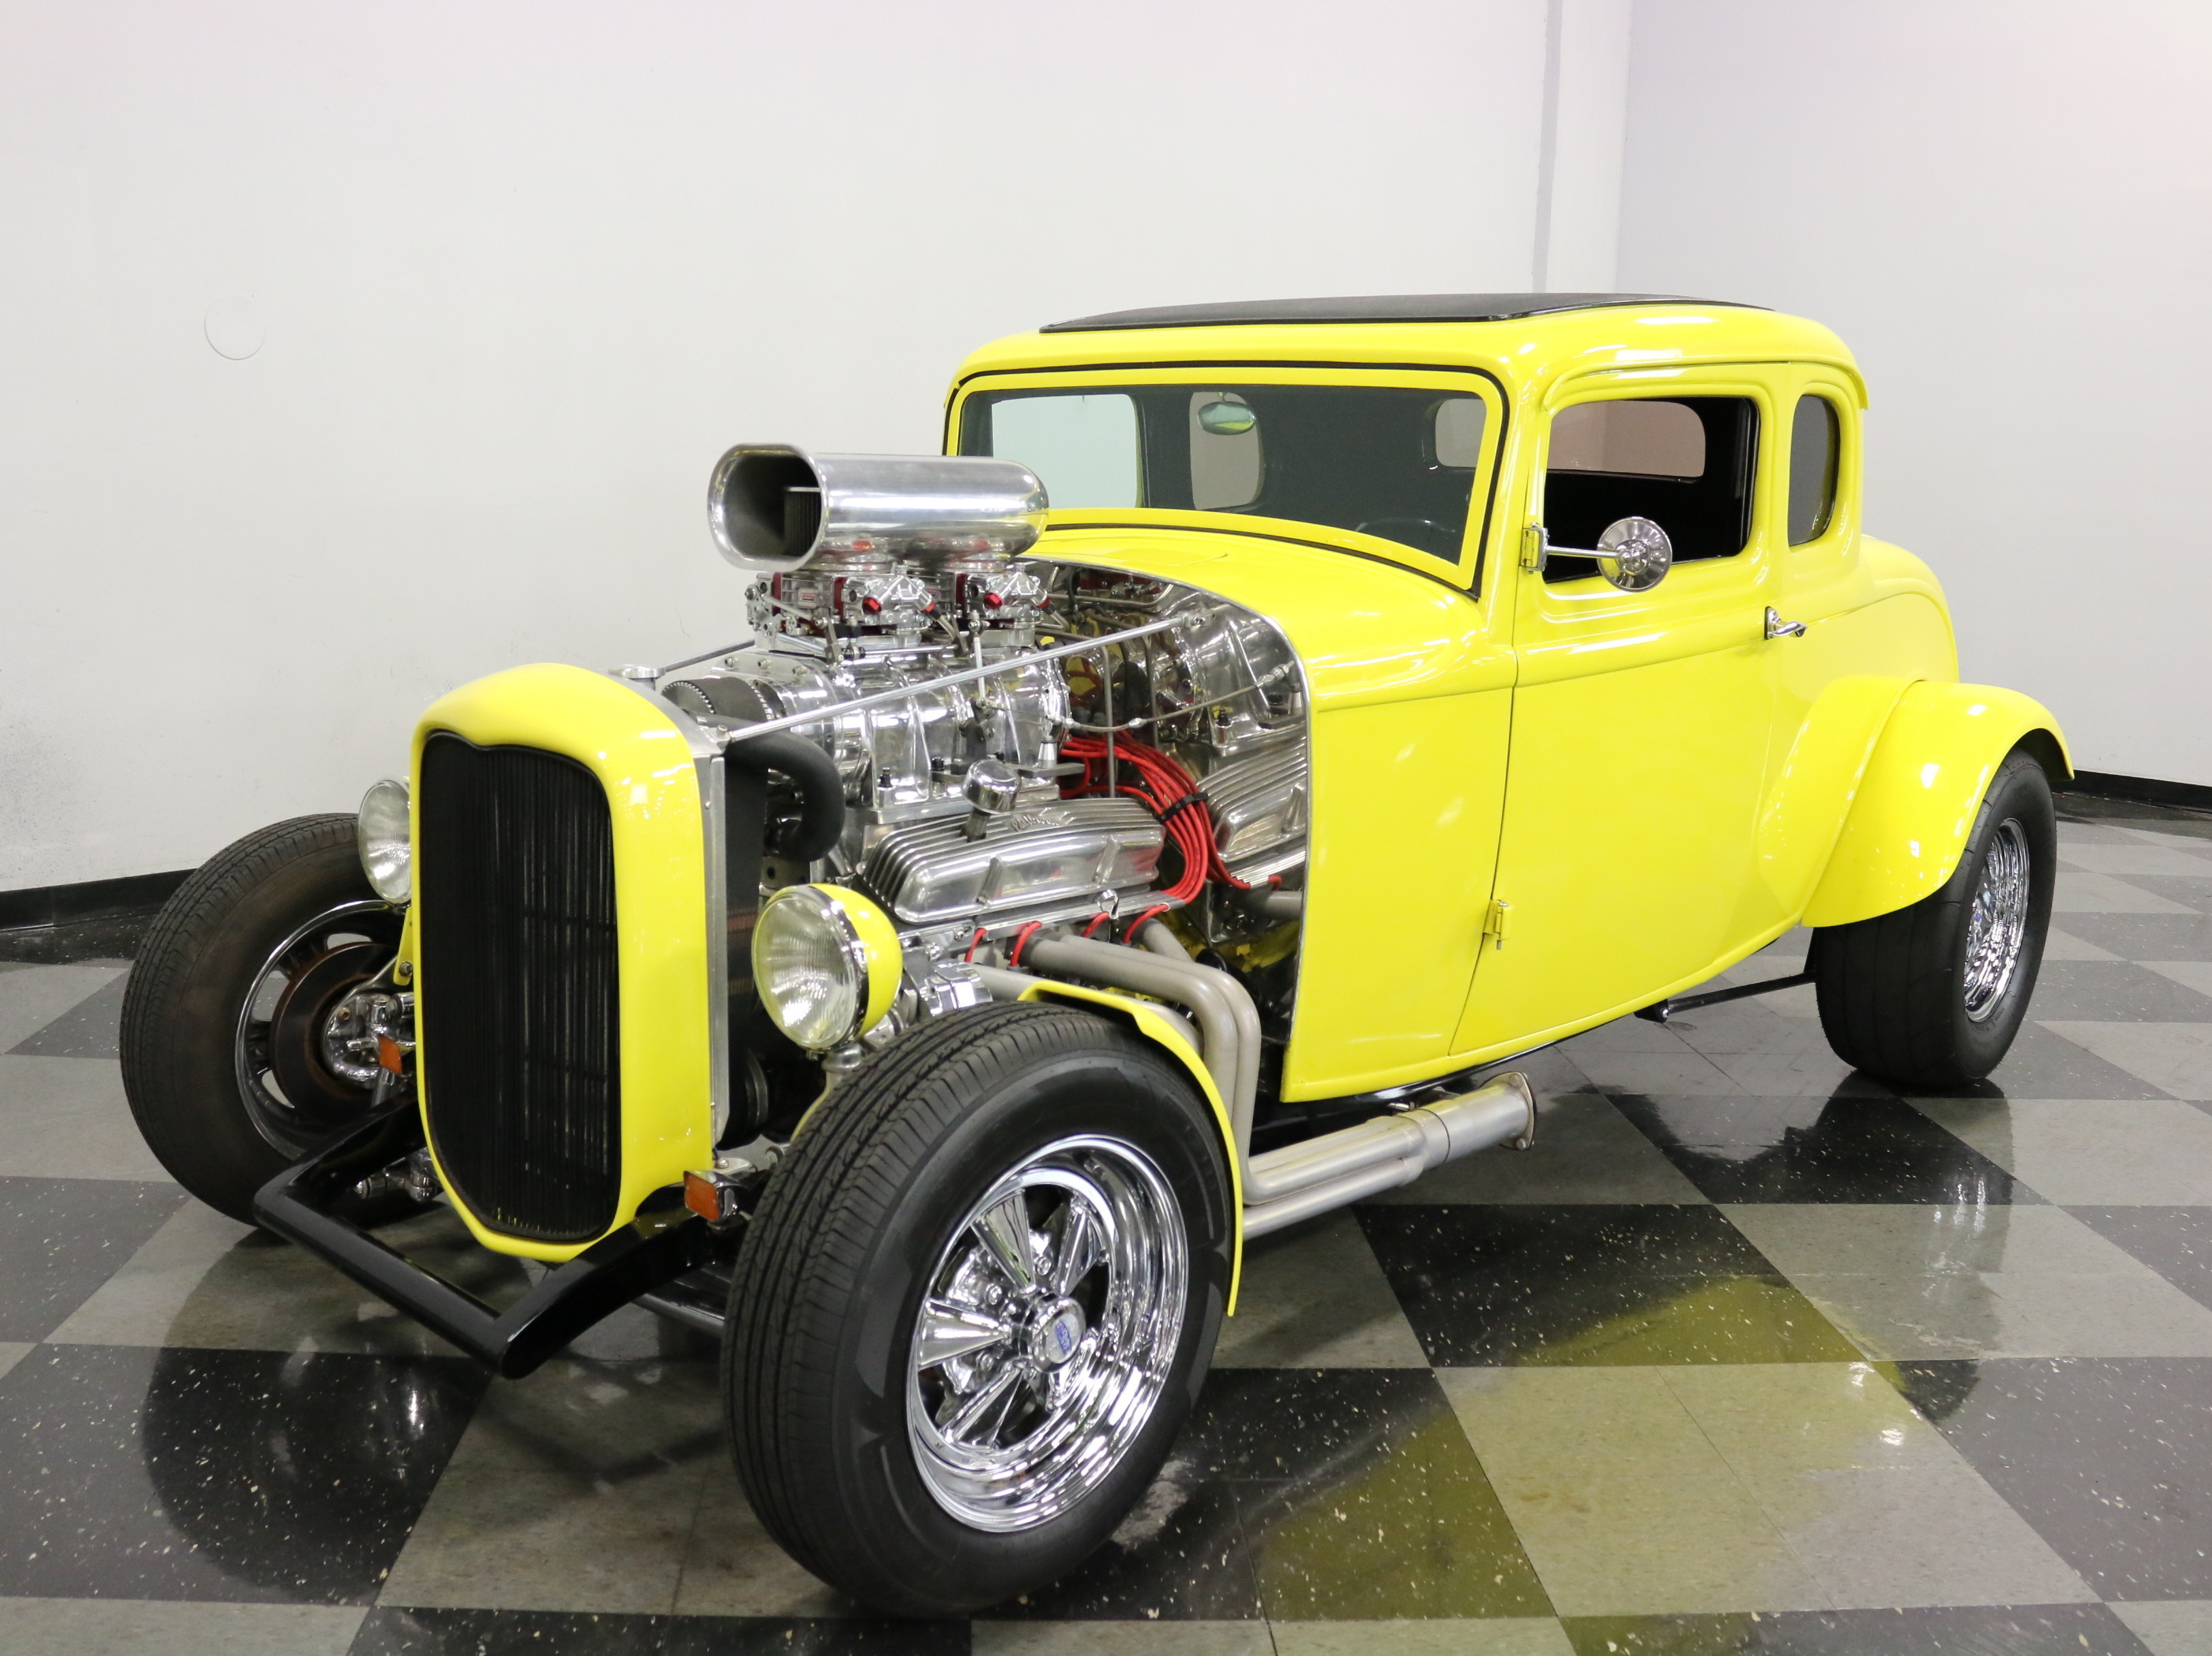 32 Ford Coupe For Sale Craigslist >> 1932 Ford 5-Window Coupe for sale #63594 | MCG